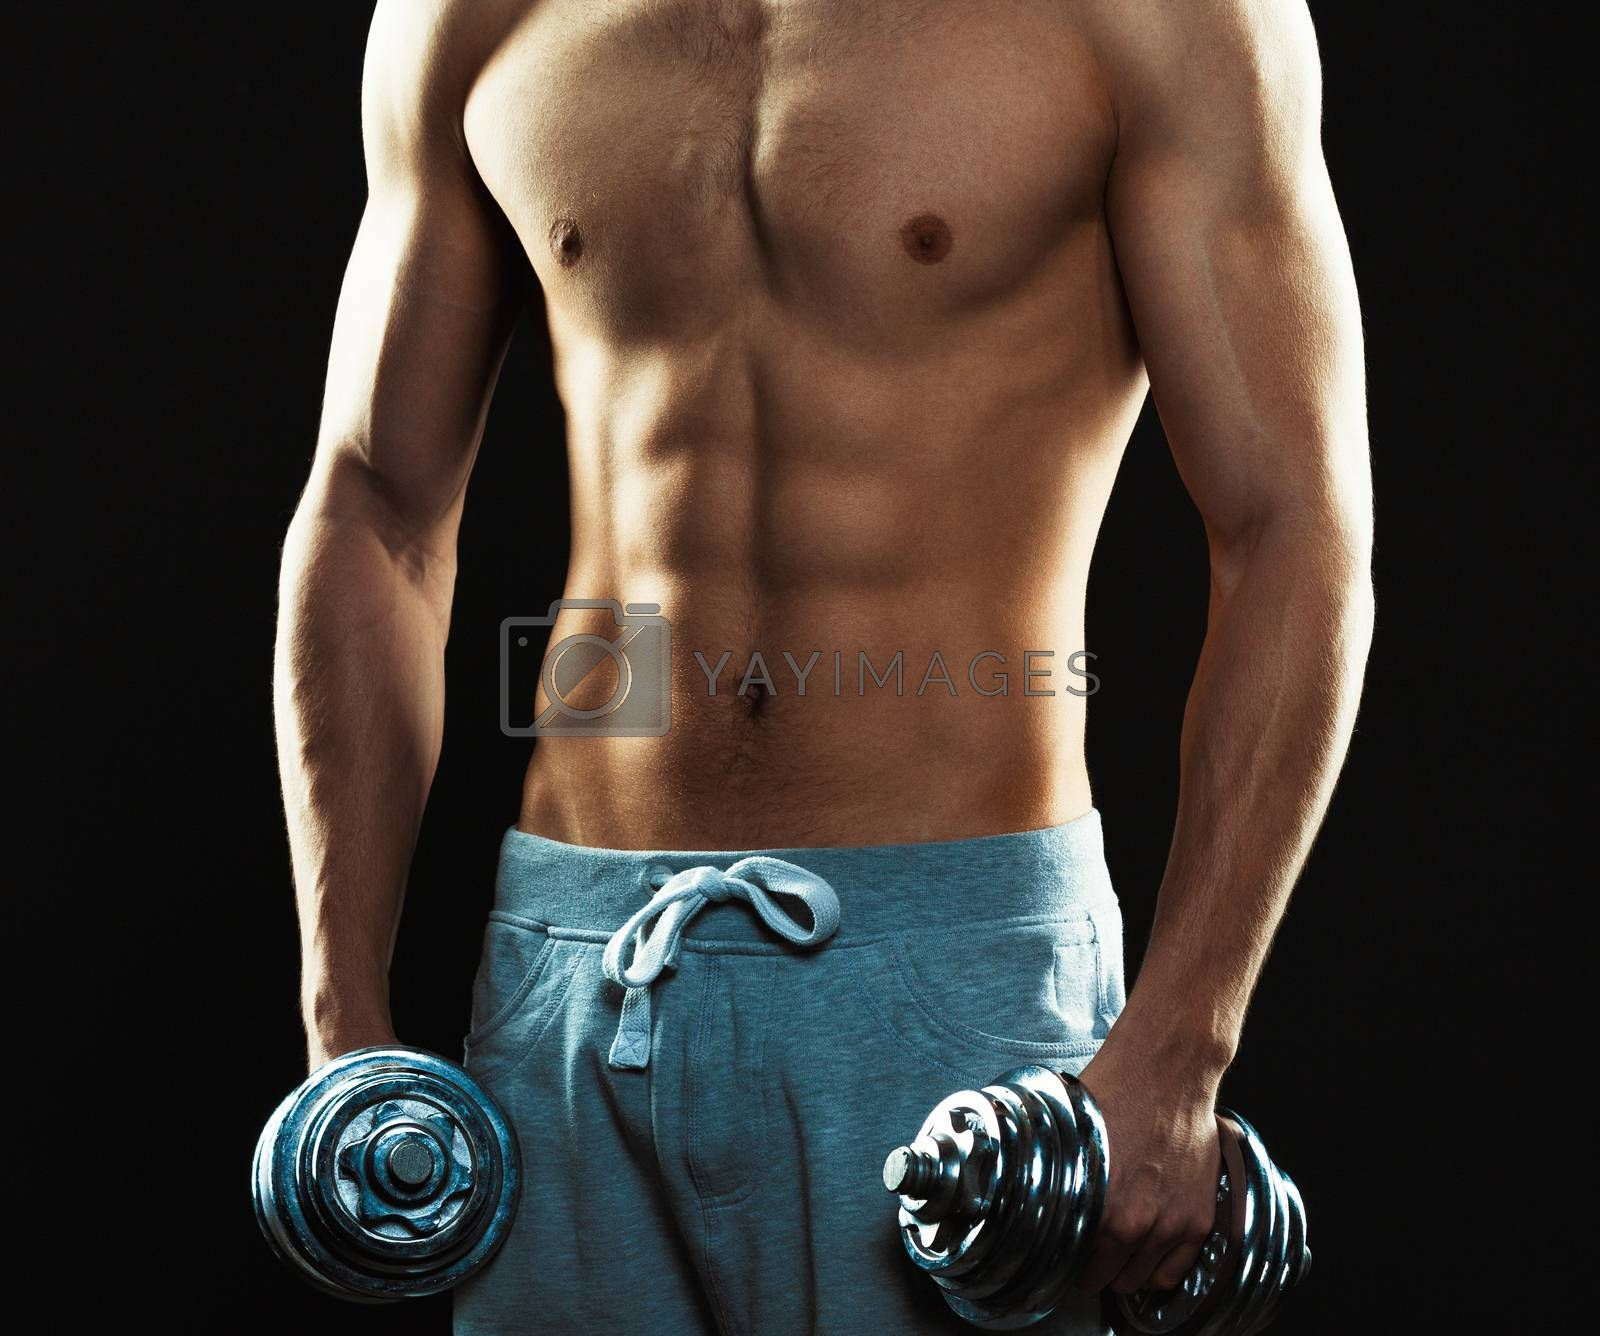 Royalty free image of Athletic man with dumbbells on the black background by vlad_star